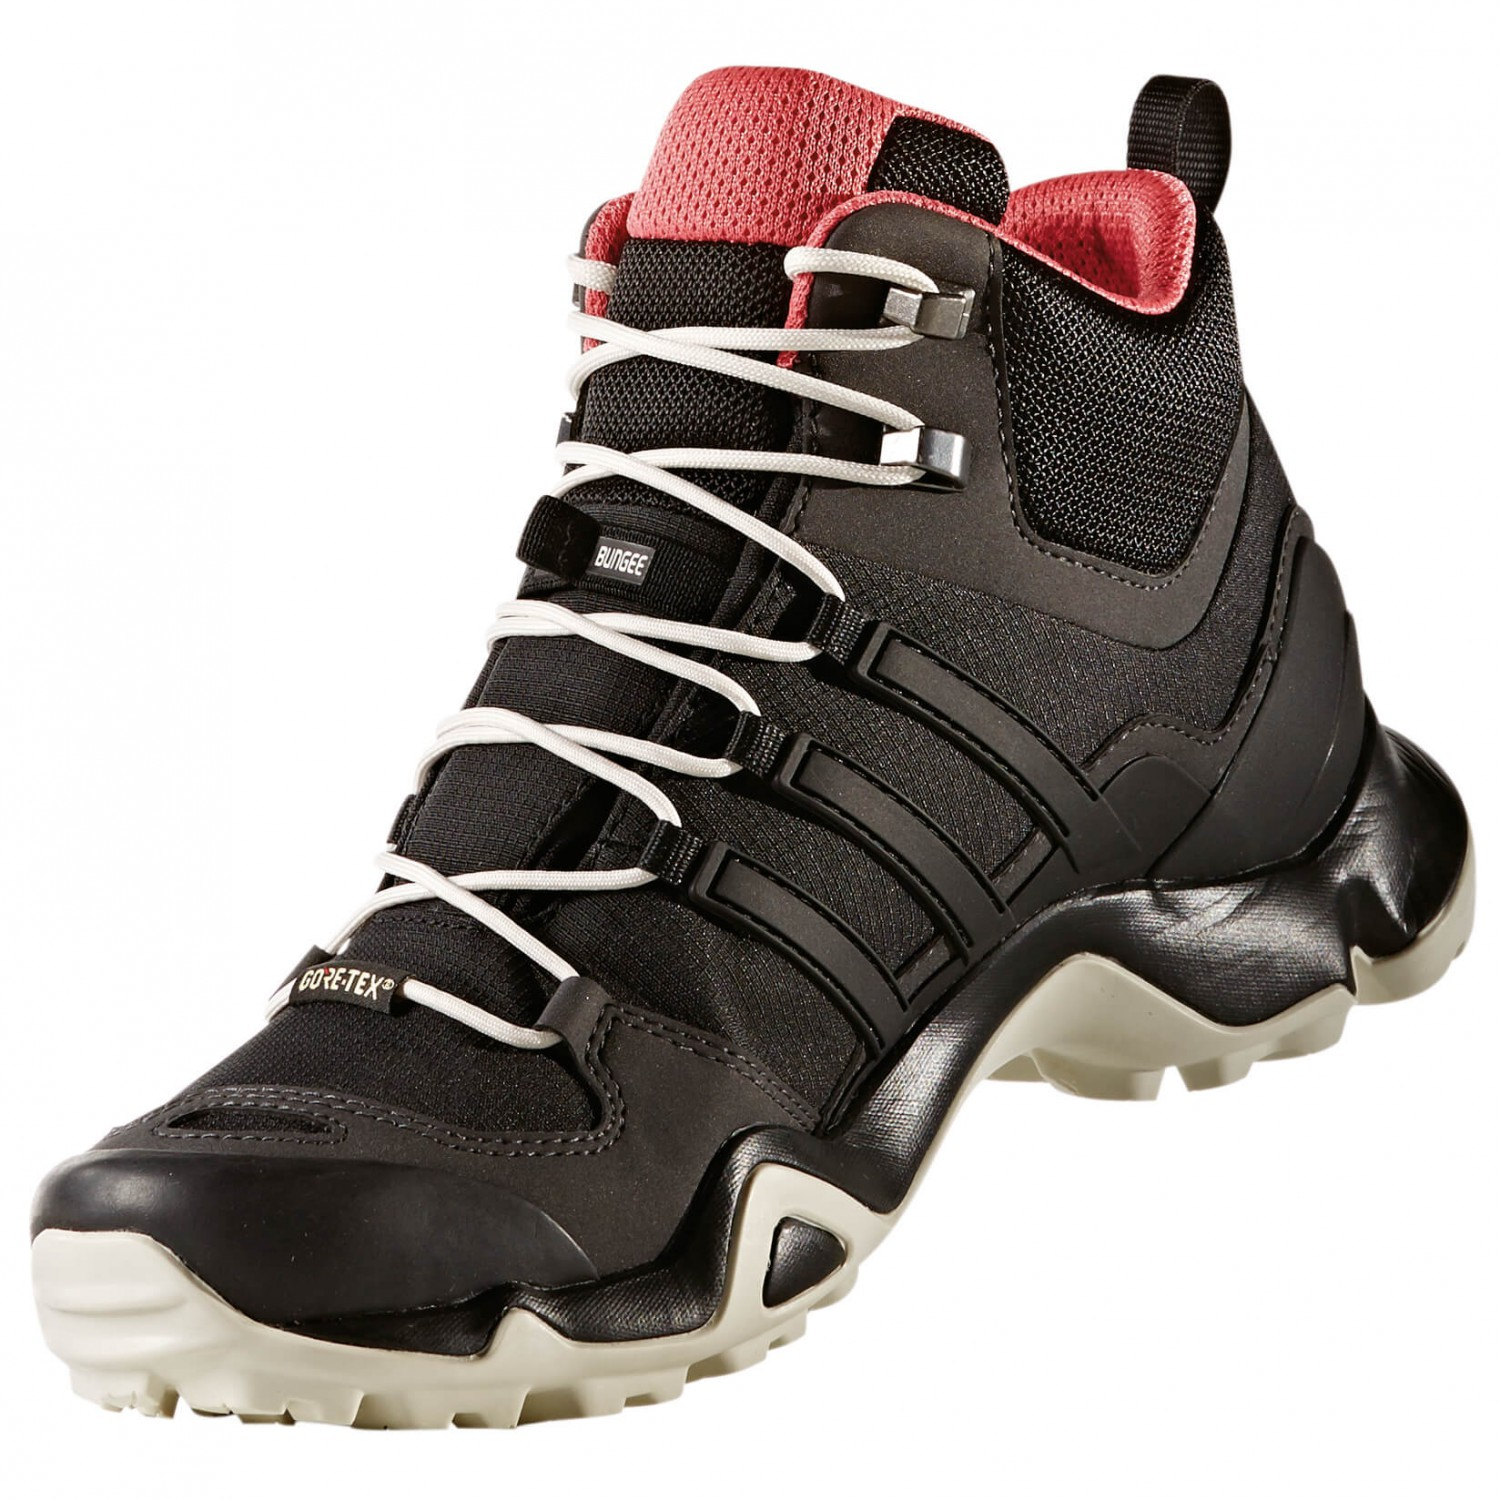 Adidas Terrex Swift R Mid GTX Walking boots Women's | Buy